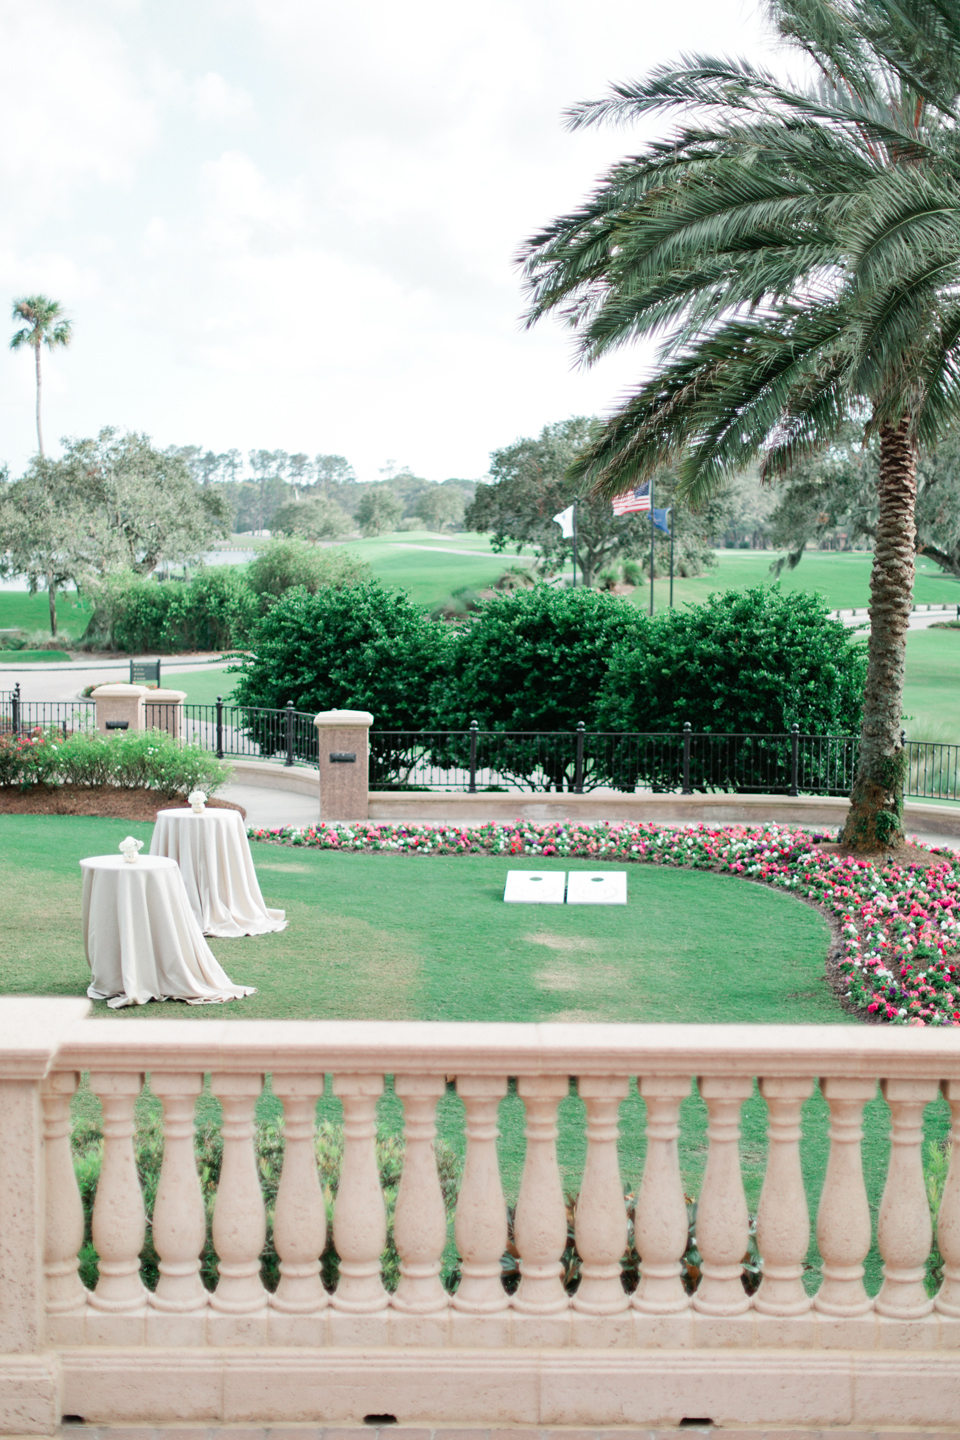 Image of cocktail hour set-up at TPC Sawgrass at Ponte Vedra, Florida